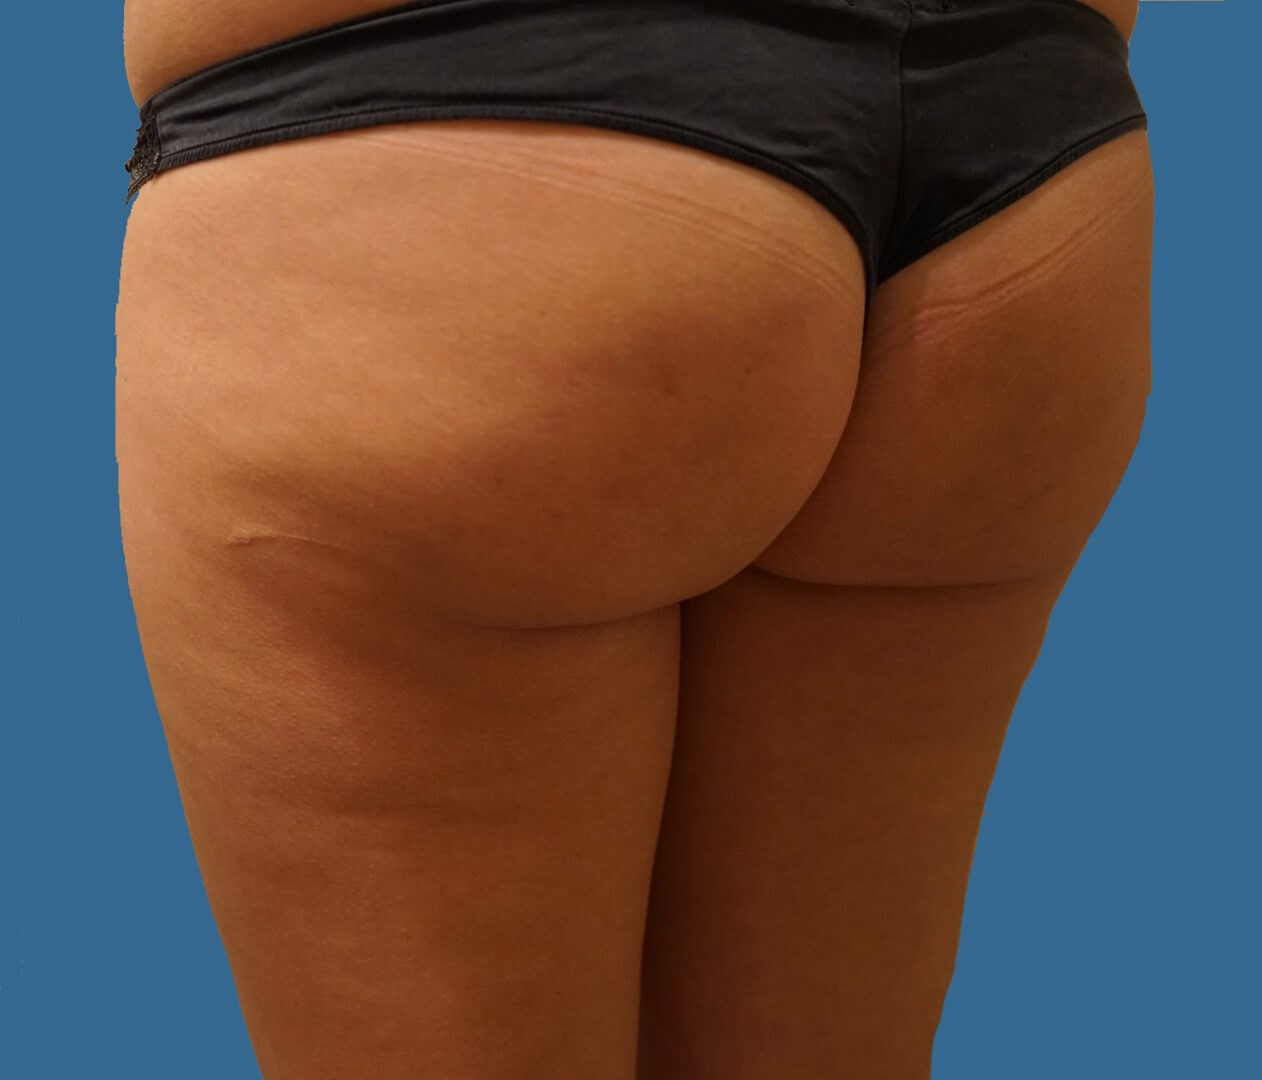 Cellfina® - Back View After Cellfina® Procedure